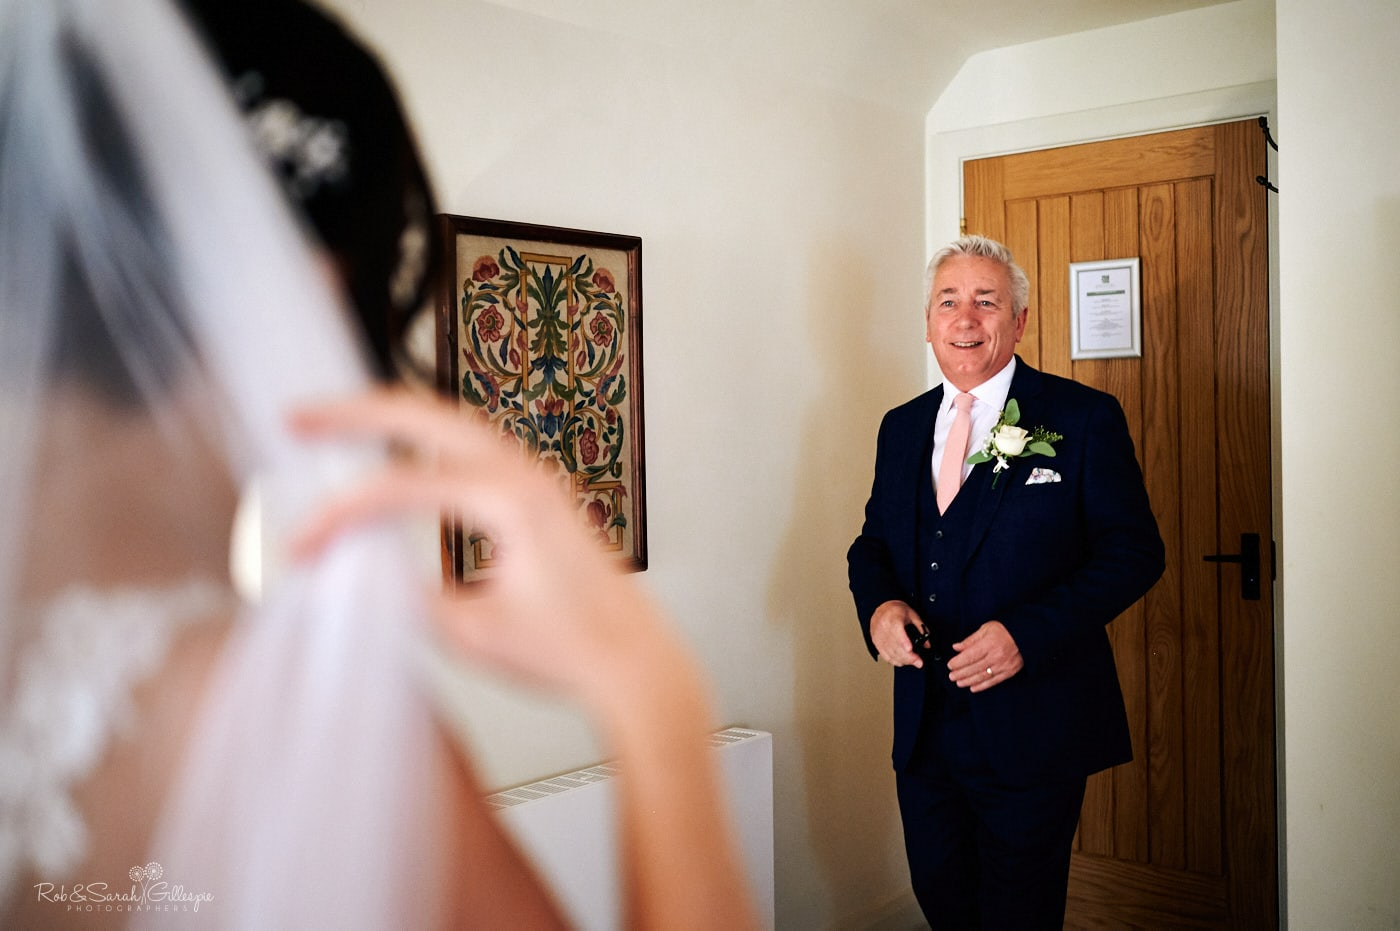 Bride's father sees daughter in wedding dress for first time